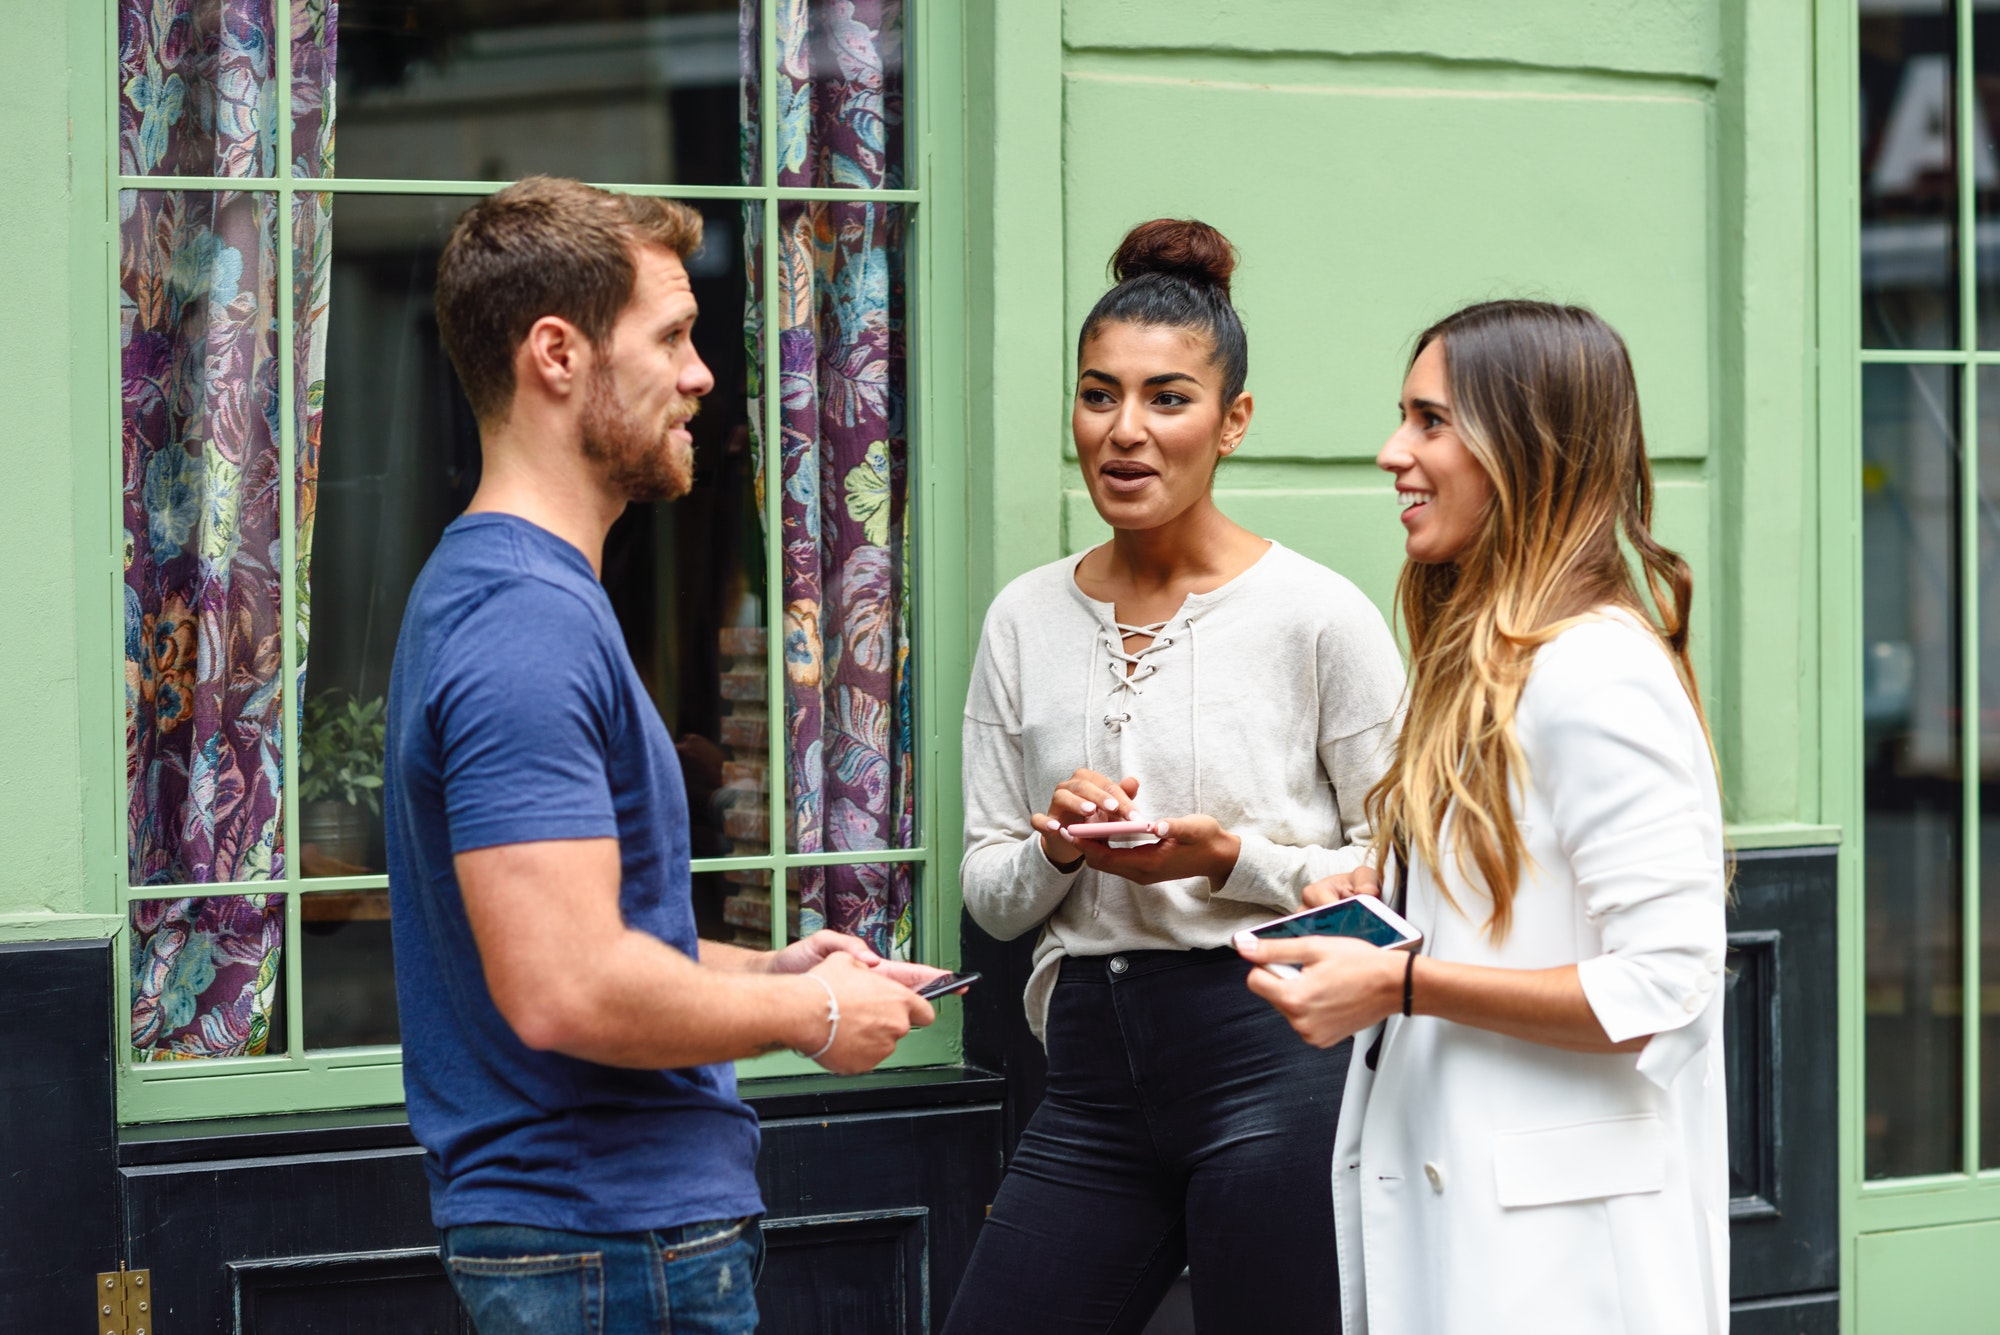 Three multiethnic people friends talking and smiling outdoors